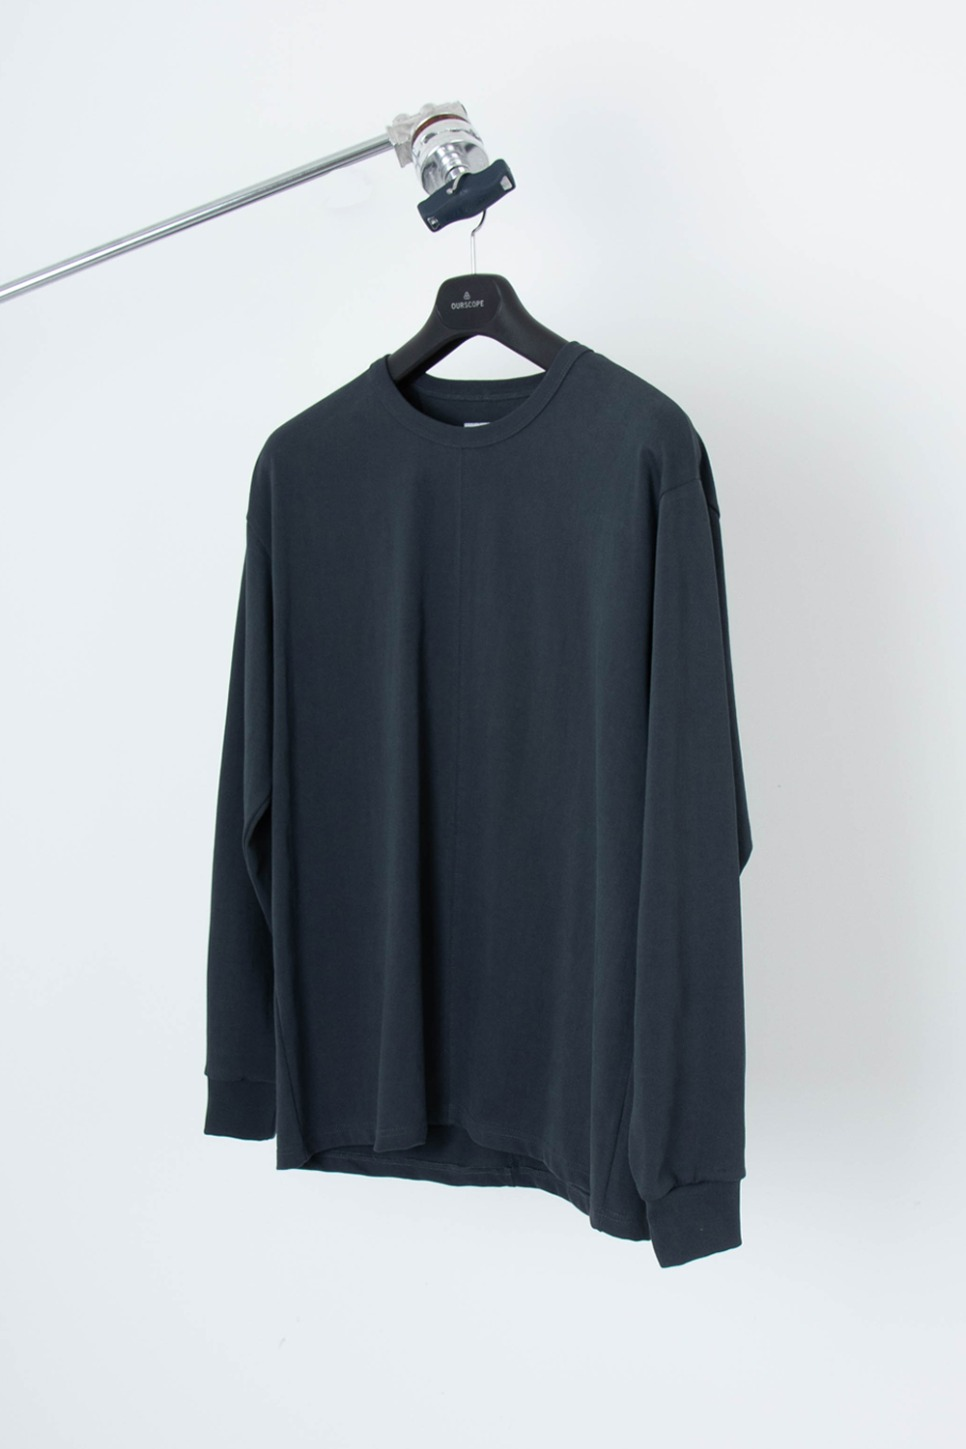 OURSCOPE아워스코프 Two Paneled Long Sleeve (Charcoal)